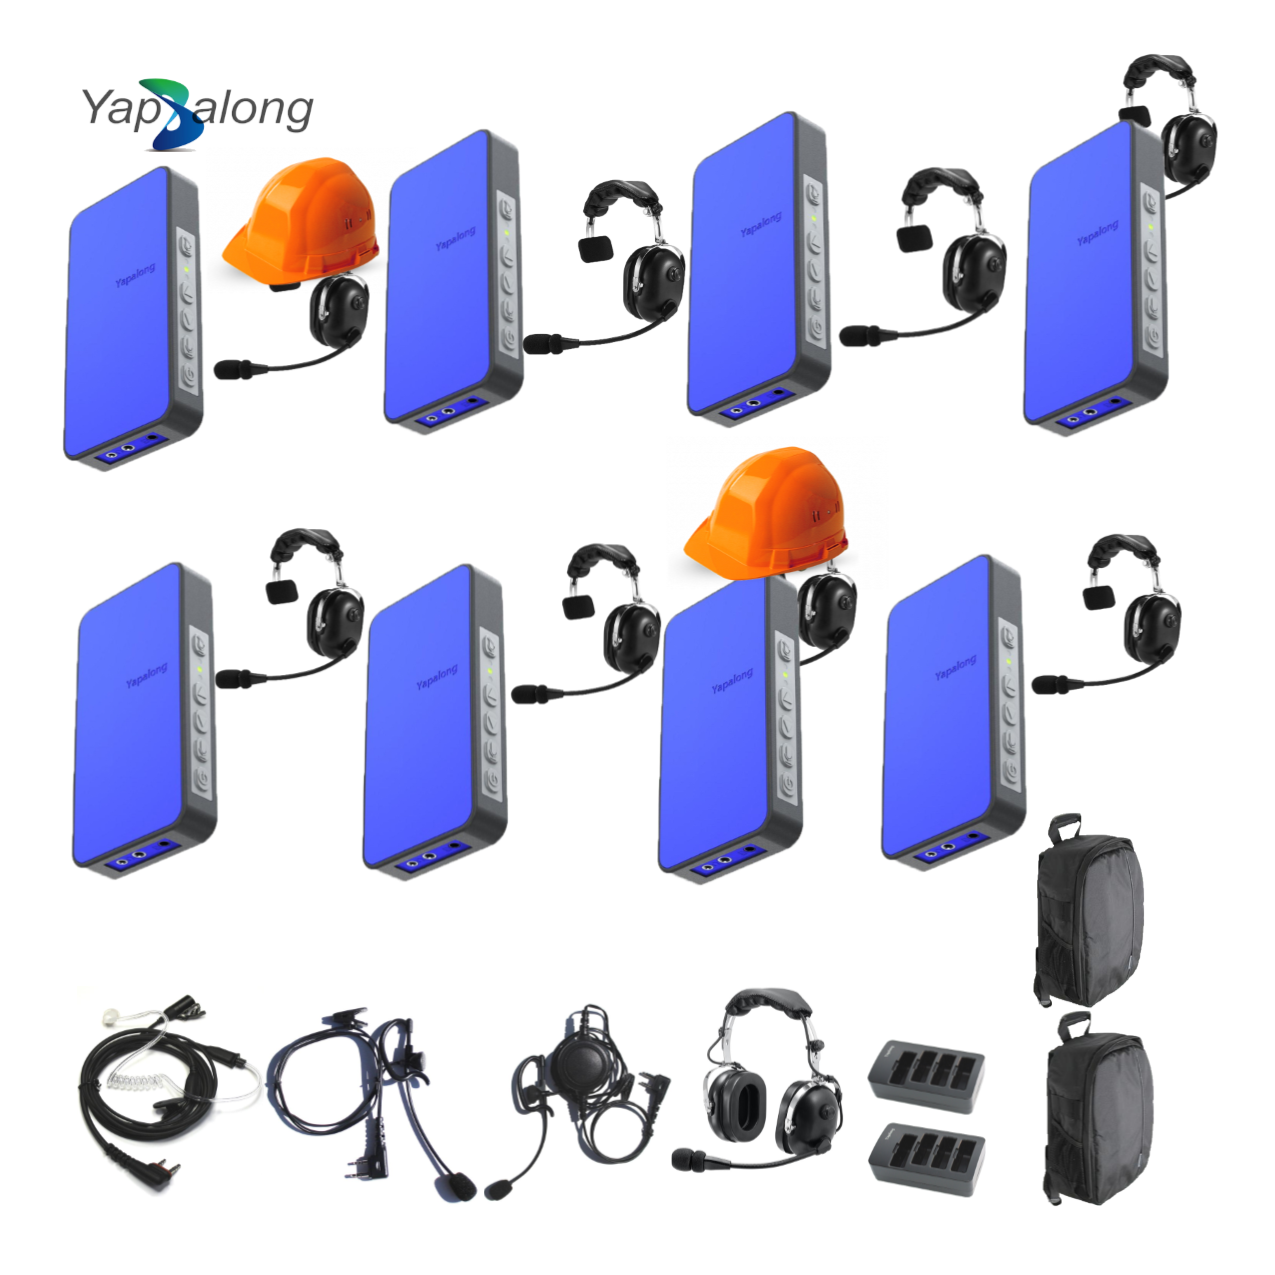 Yapalong 5000 (8-User) Industrial Complete Set Communications & IFB Intercom Systems